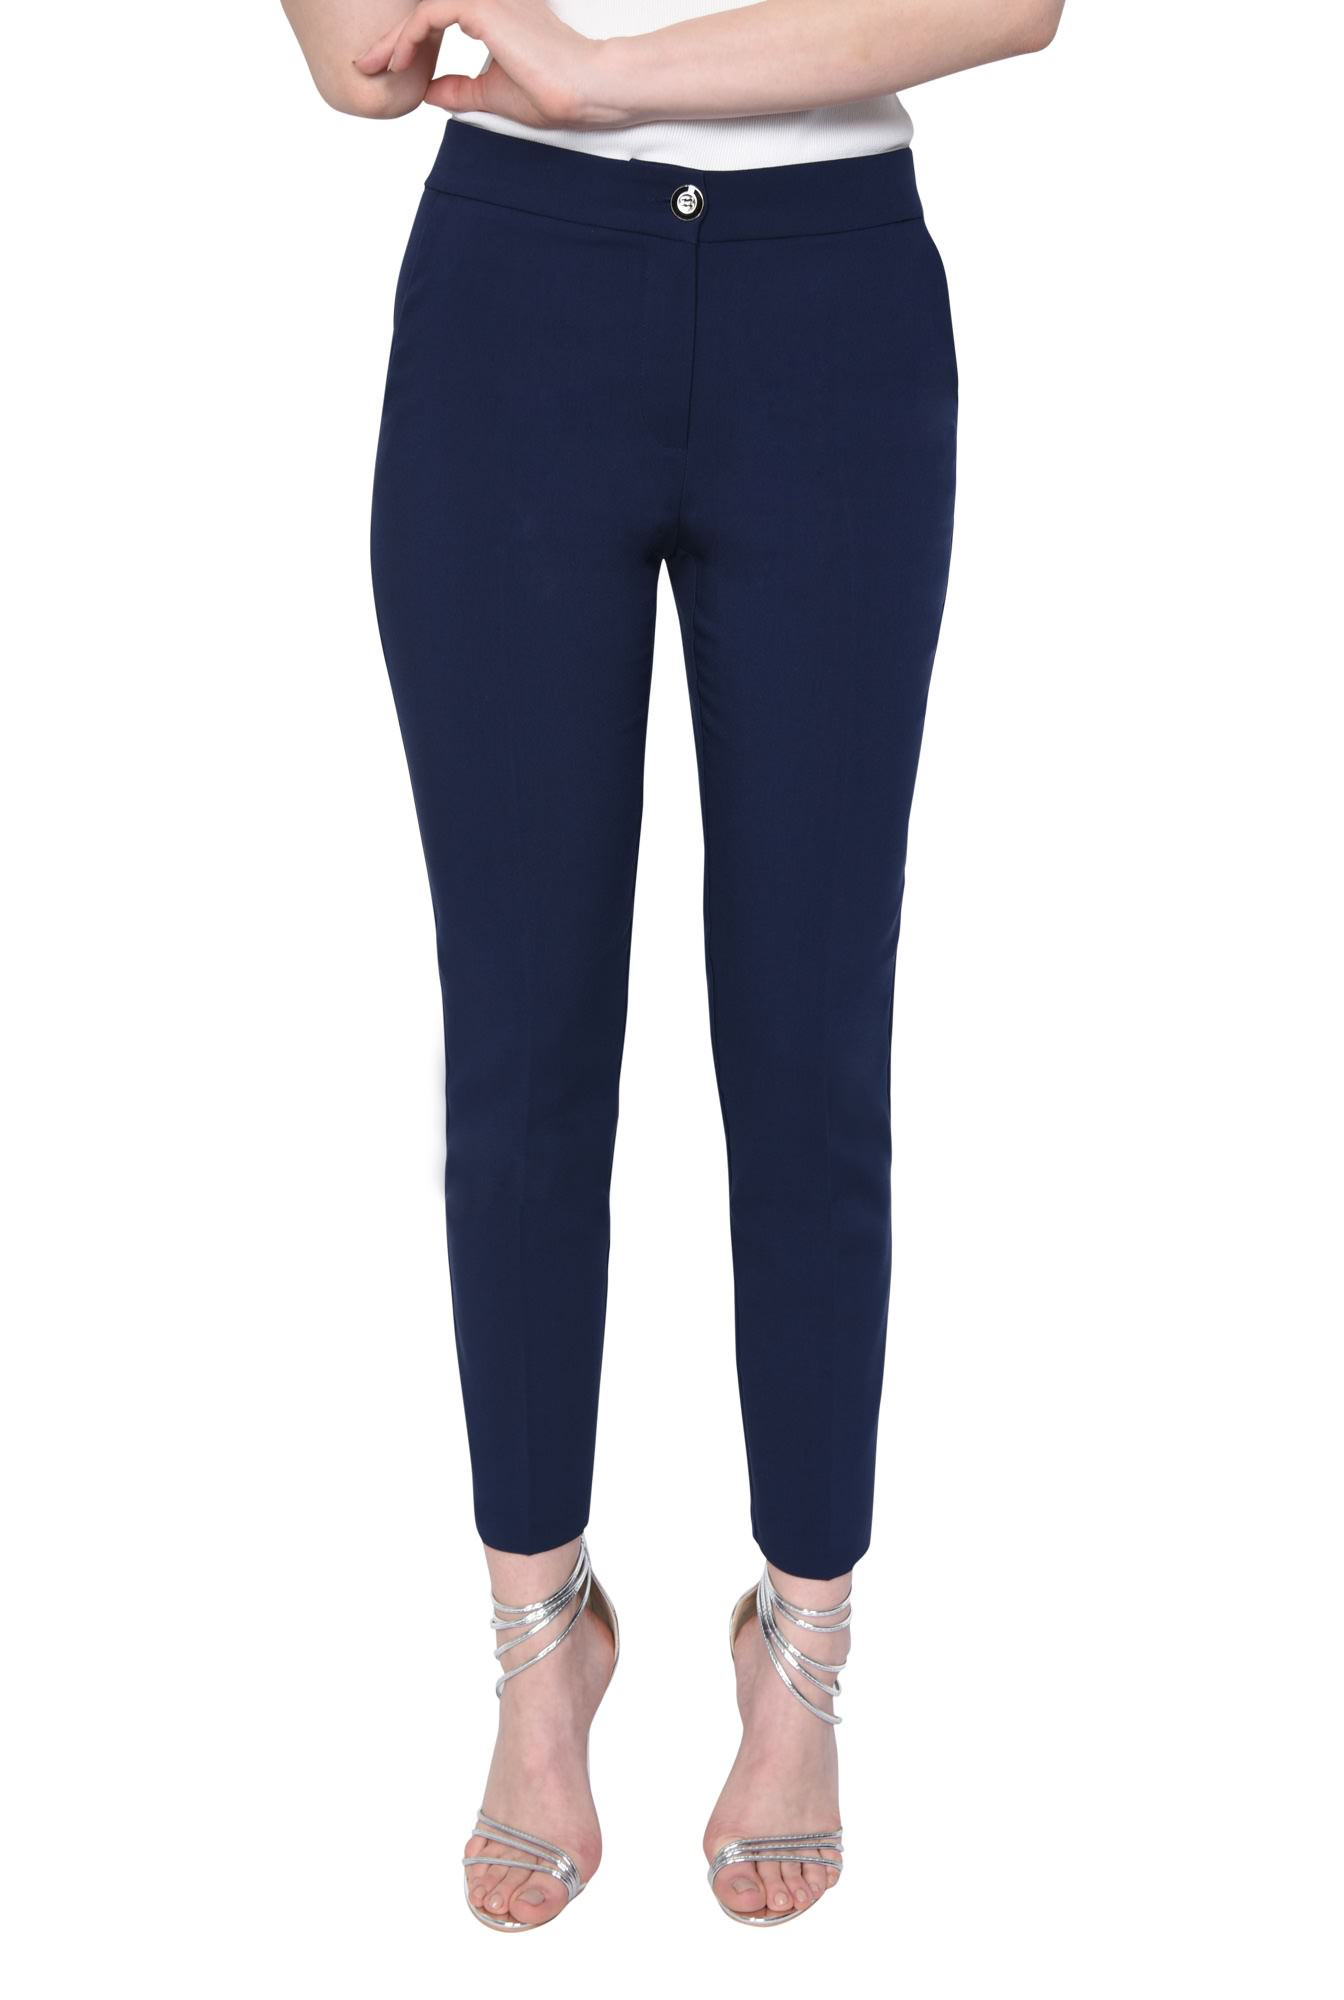 2 - PANTALON OFFICE CONIC PT 138-BLEUMARIN